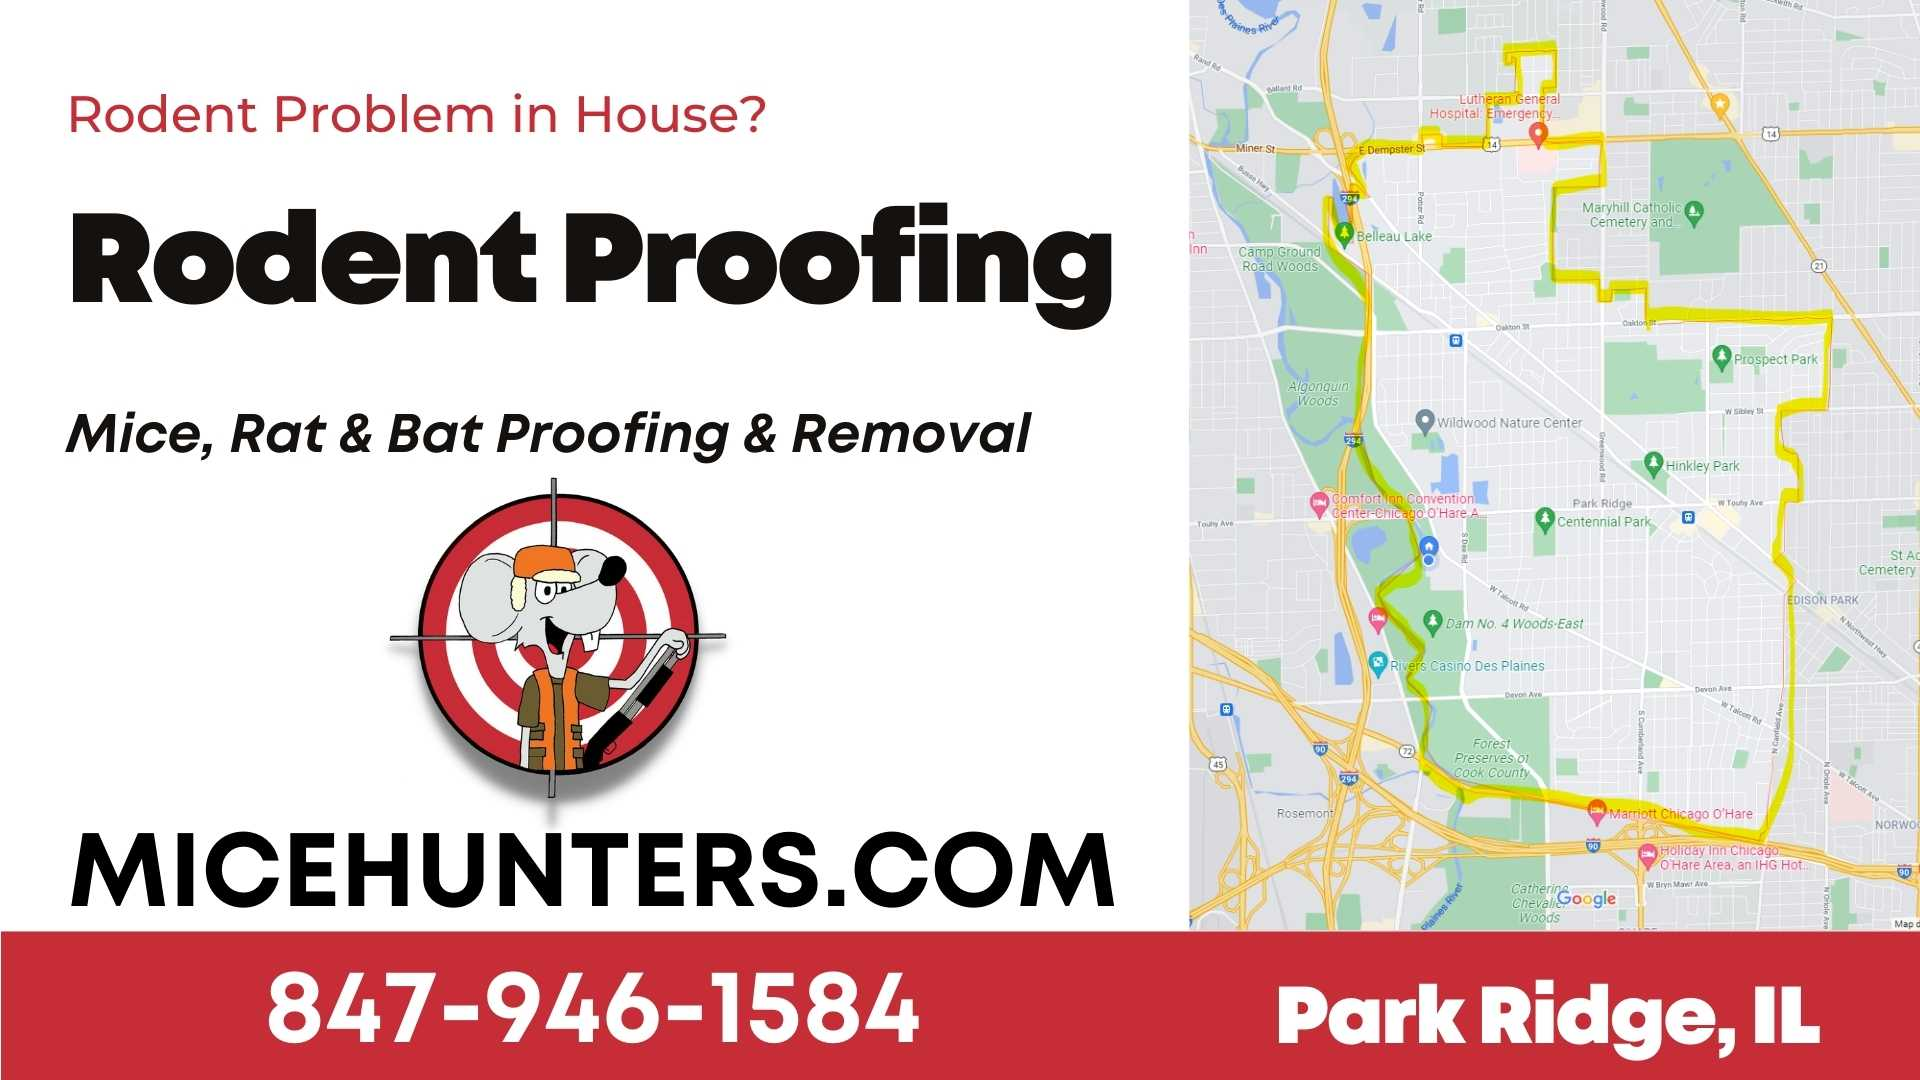 Park Ridge Rodent and Mice Proofing Exterminator near me